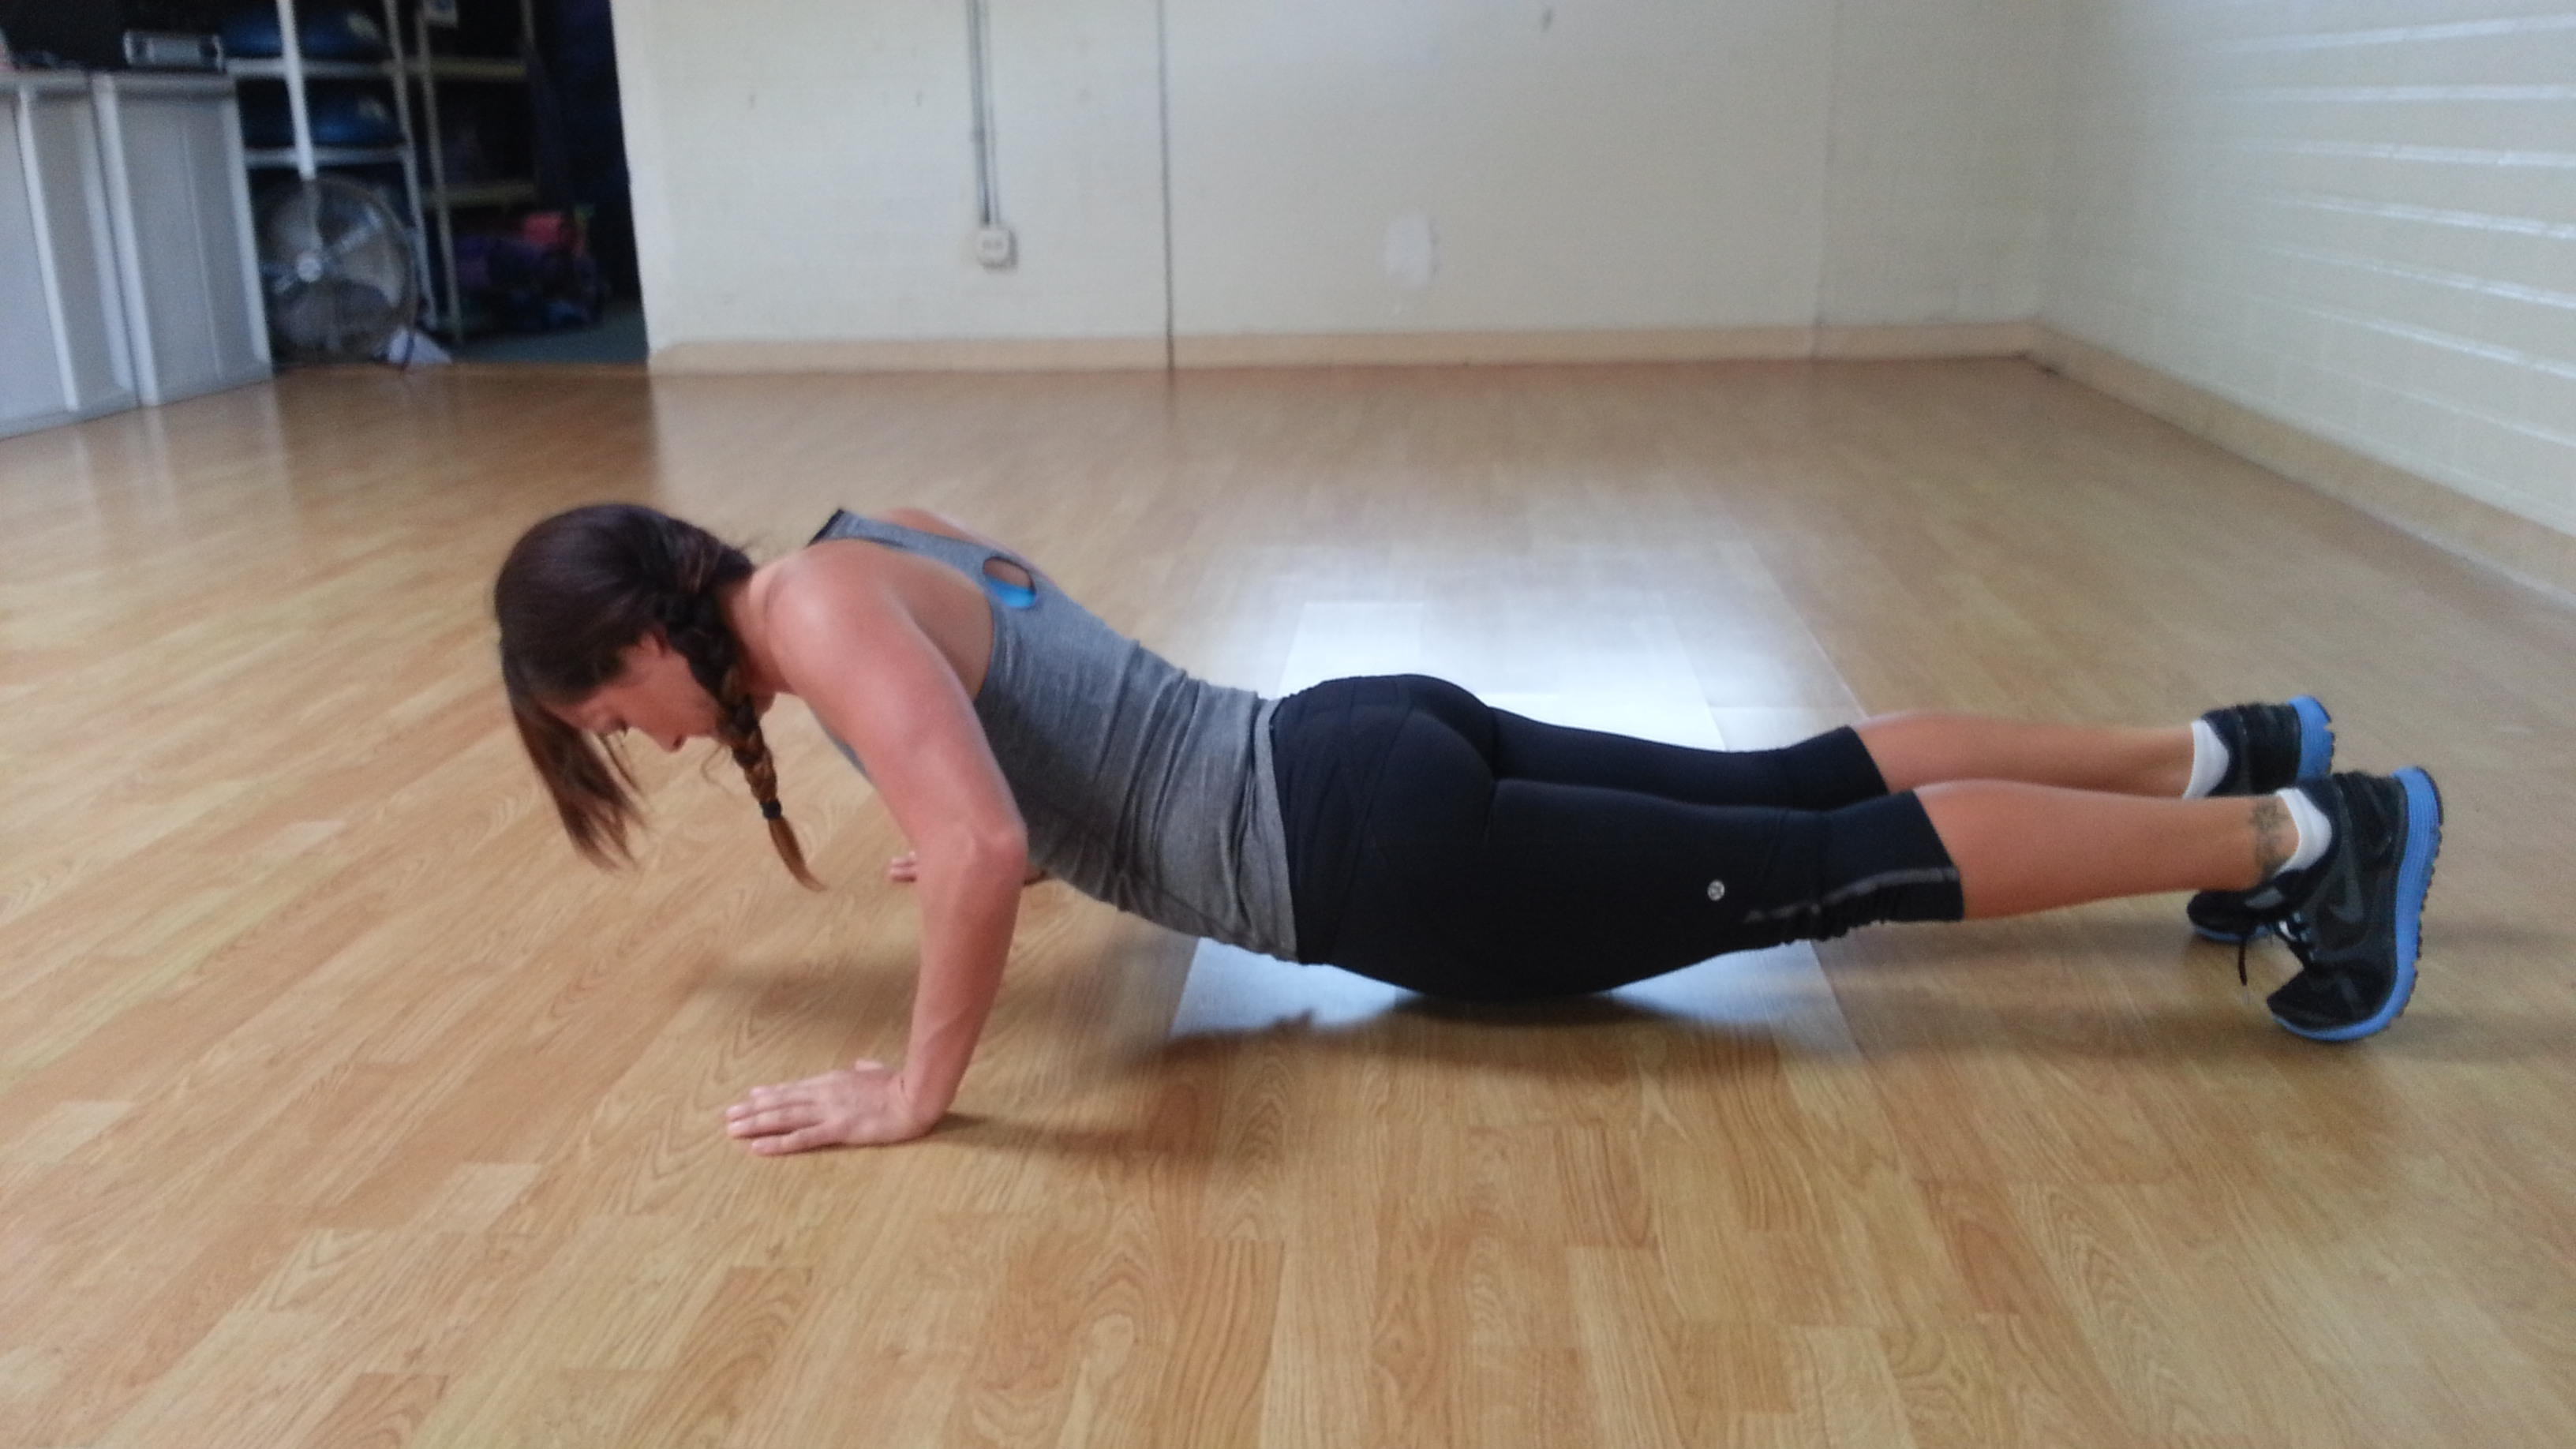 A program for push-ups at 75 years old | b-reddy org